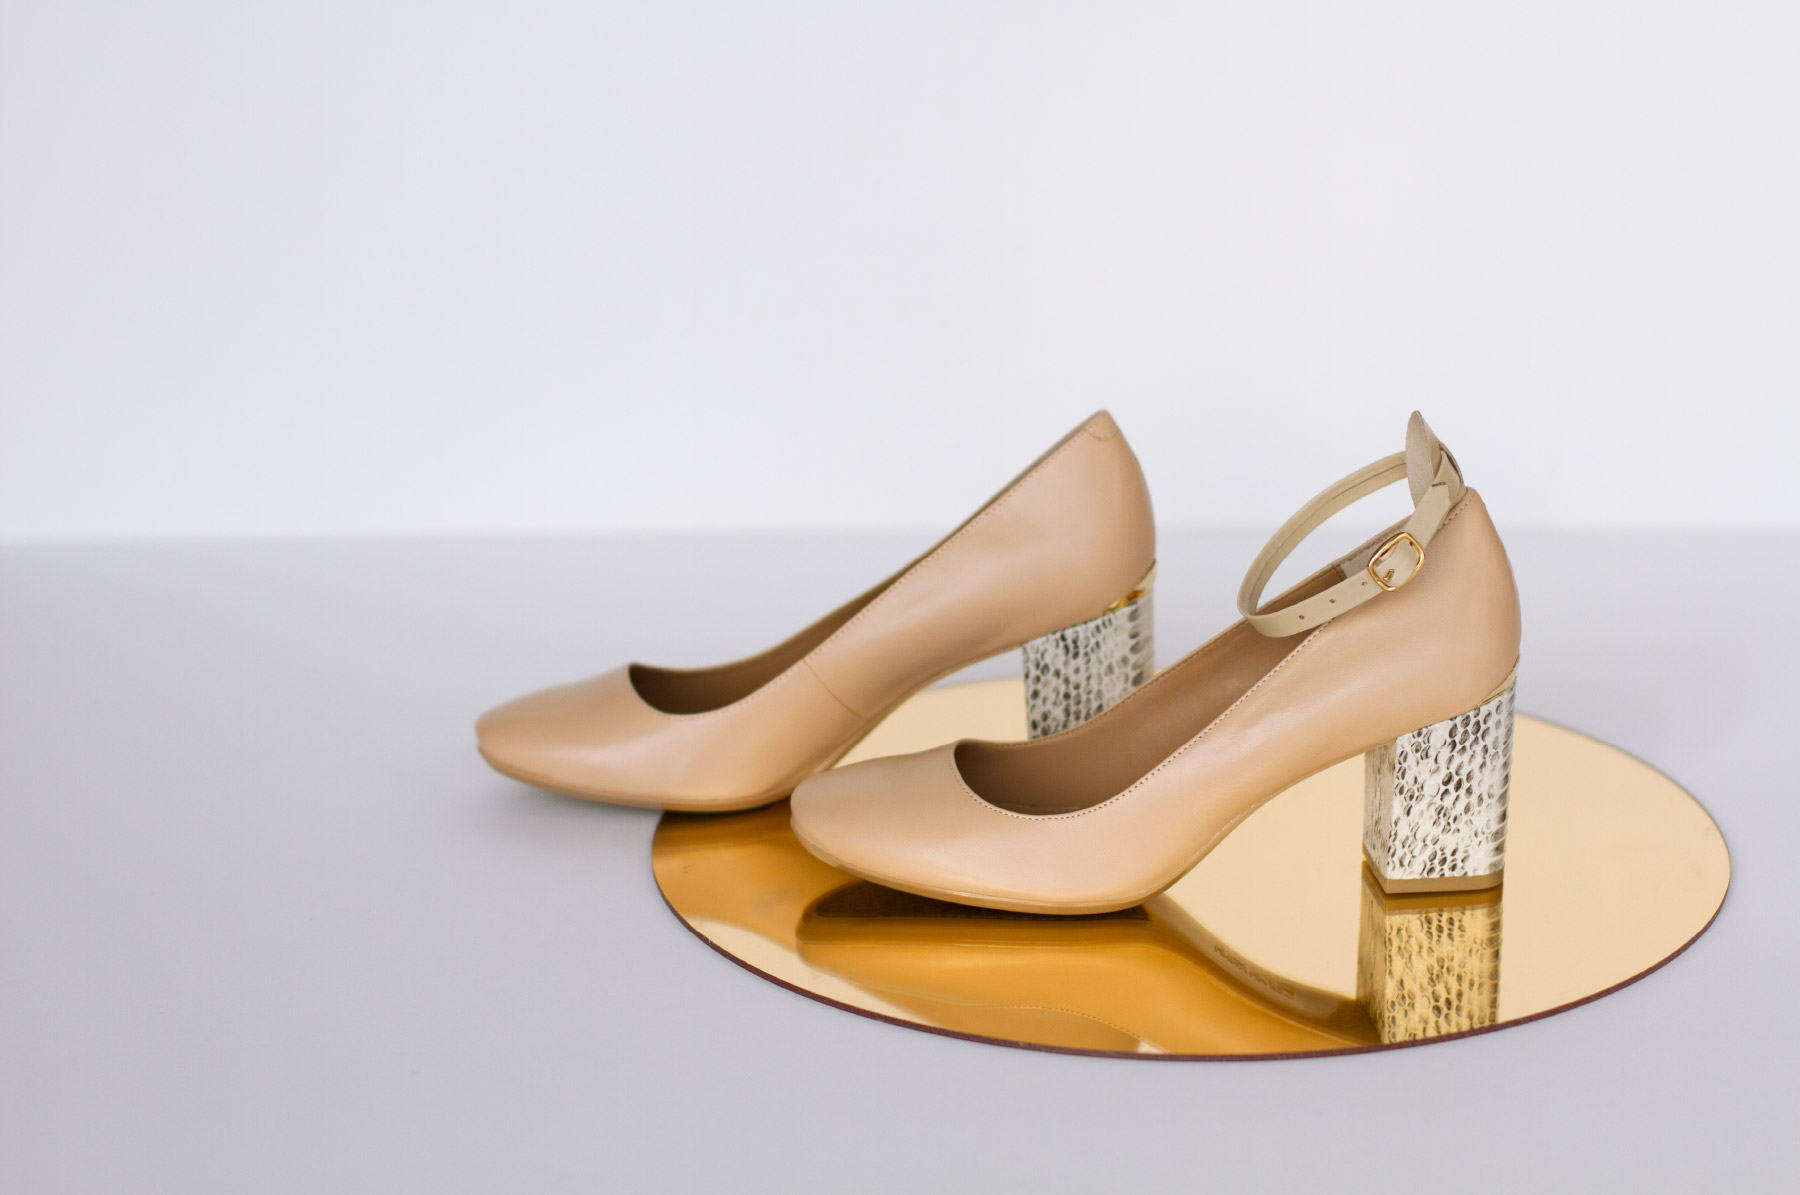 Nude high heels with attachable ankle straps